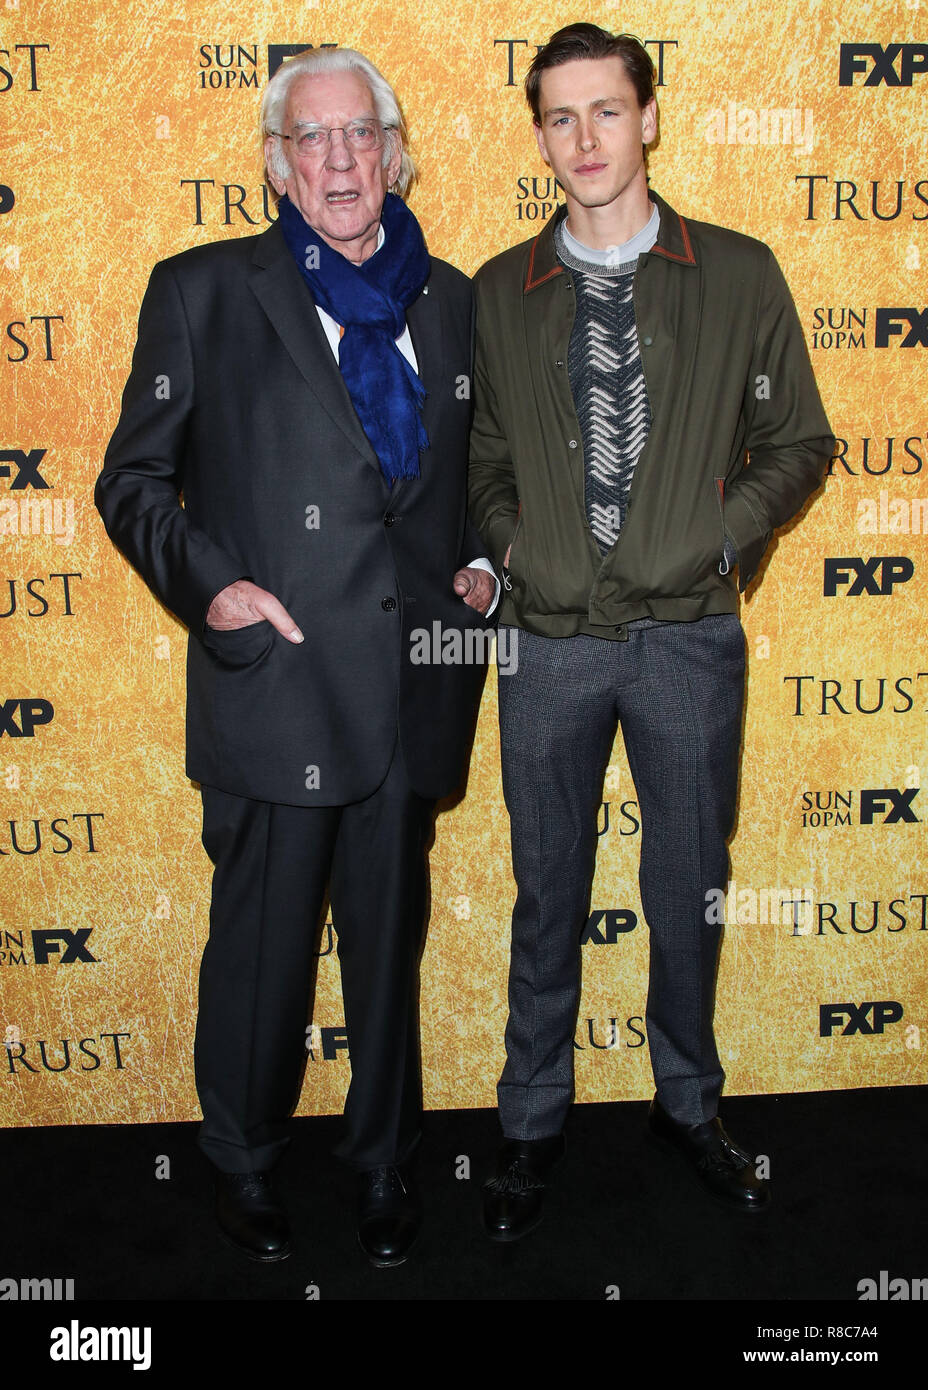 NORTH HOLLYWOOD, LOS ANGELES, CA, USA - MAY 11: Donald Sutherland, Harris Dickinson at the For Your Consideration Event For FX's 'Trust' held at the Saban Media Center at The Television Academy on May 11, 2018 in North Hollywood, Los Angeles, California, United States. (Photo by Xavier Collin/Image Press Agency) Stock Photo